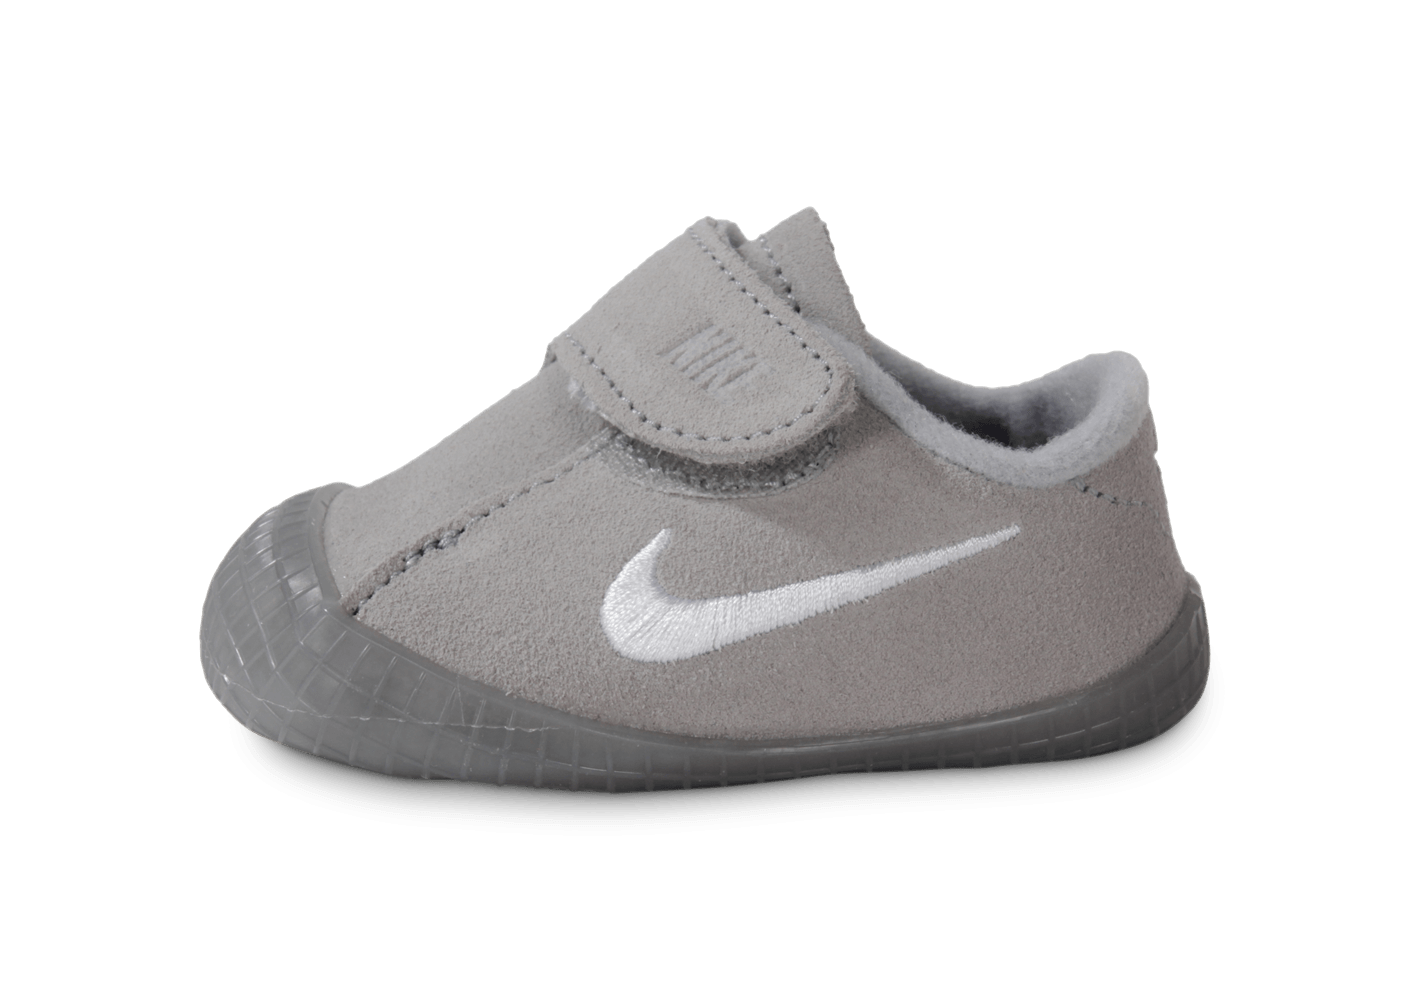 best service 405d0 629ab ... chaussures nike waffle 1 bebe crib grise vue exterieure